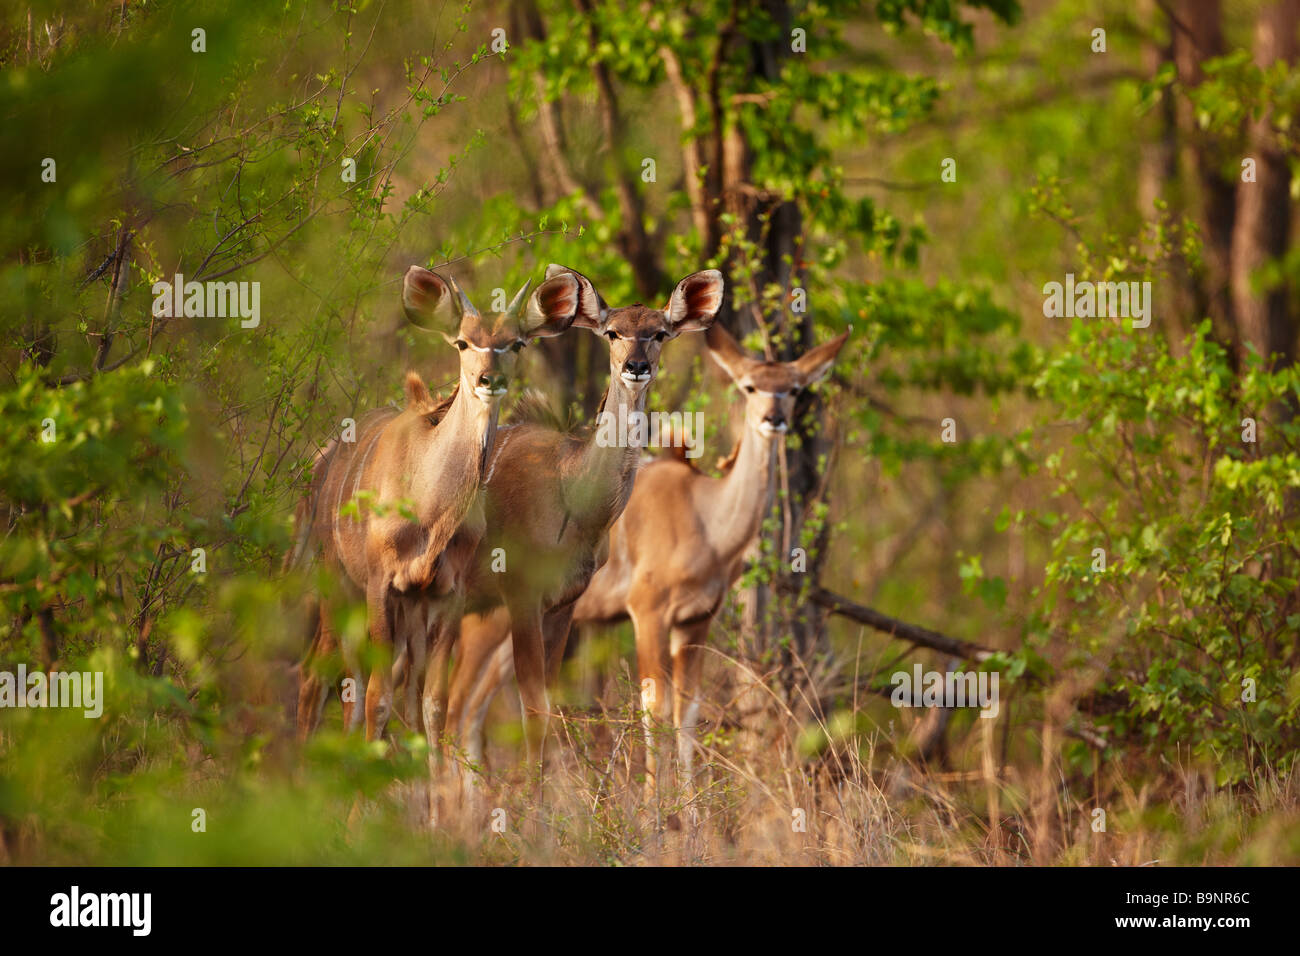 three Kudu ewes in the bush, Kruger National Park, South Africa - Stock Image